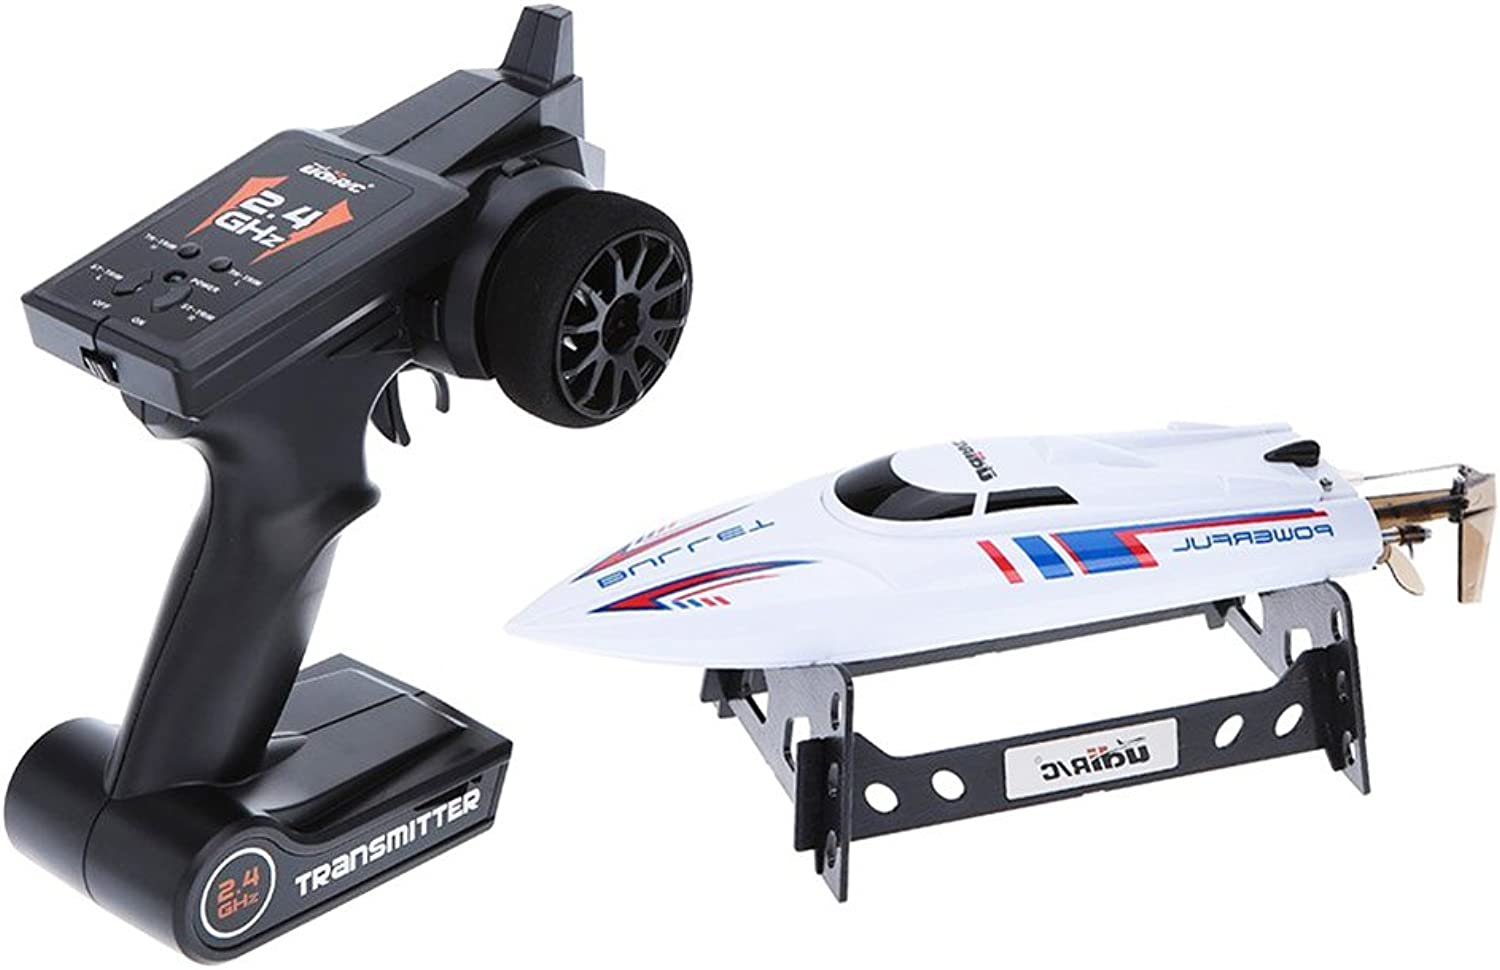 Faironly U003 2.4GHz 20KM H High Speed RC Boat Wireless Remote Control Racing Speedboat with Transmitter